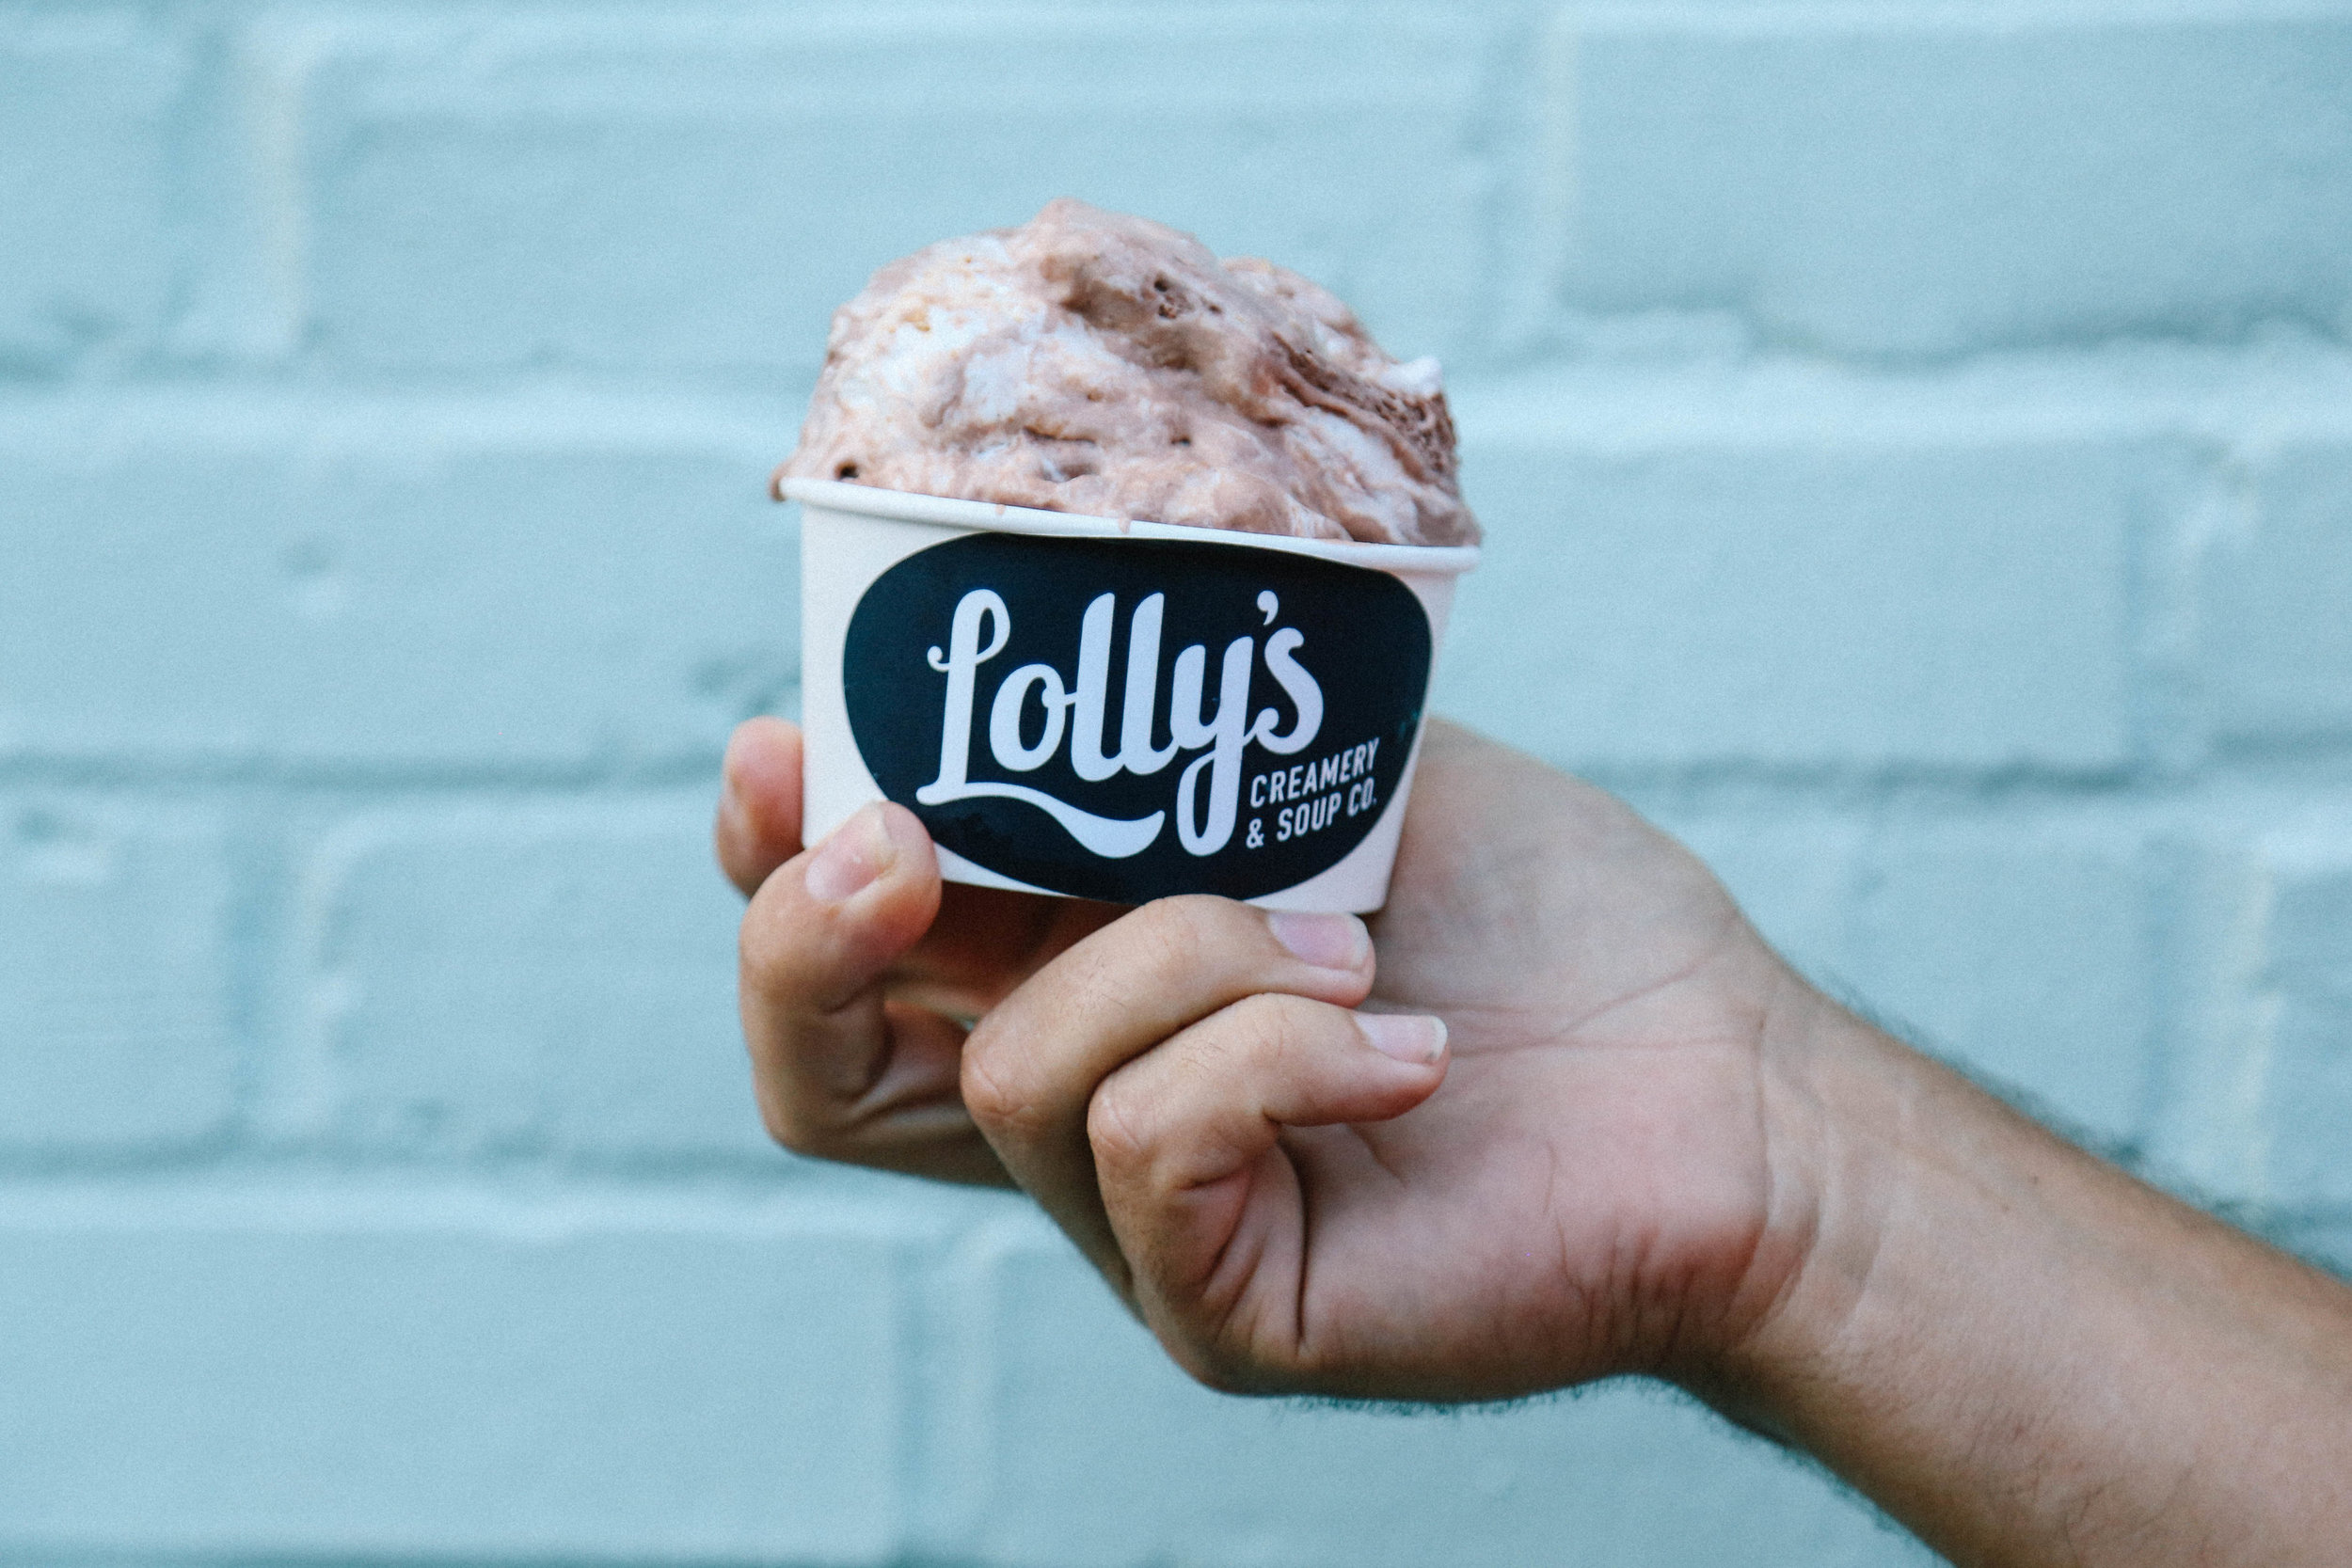 Each week we will typically feature… - - cookie monster - mint chocolate chip- chocolate - vanilla- strawberry - a non-dairy sorbet- two original craft ice cream flavors